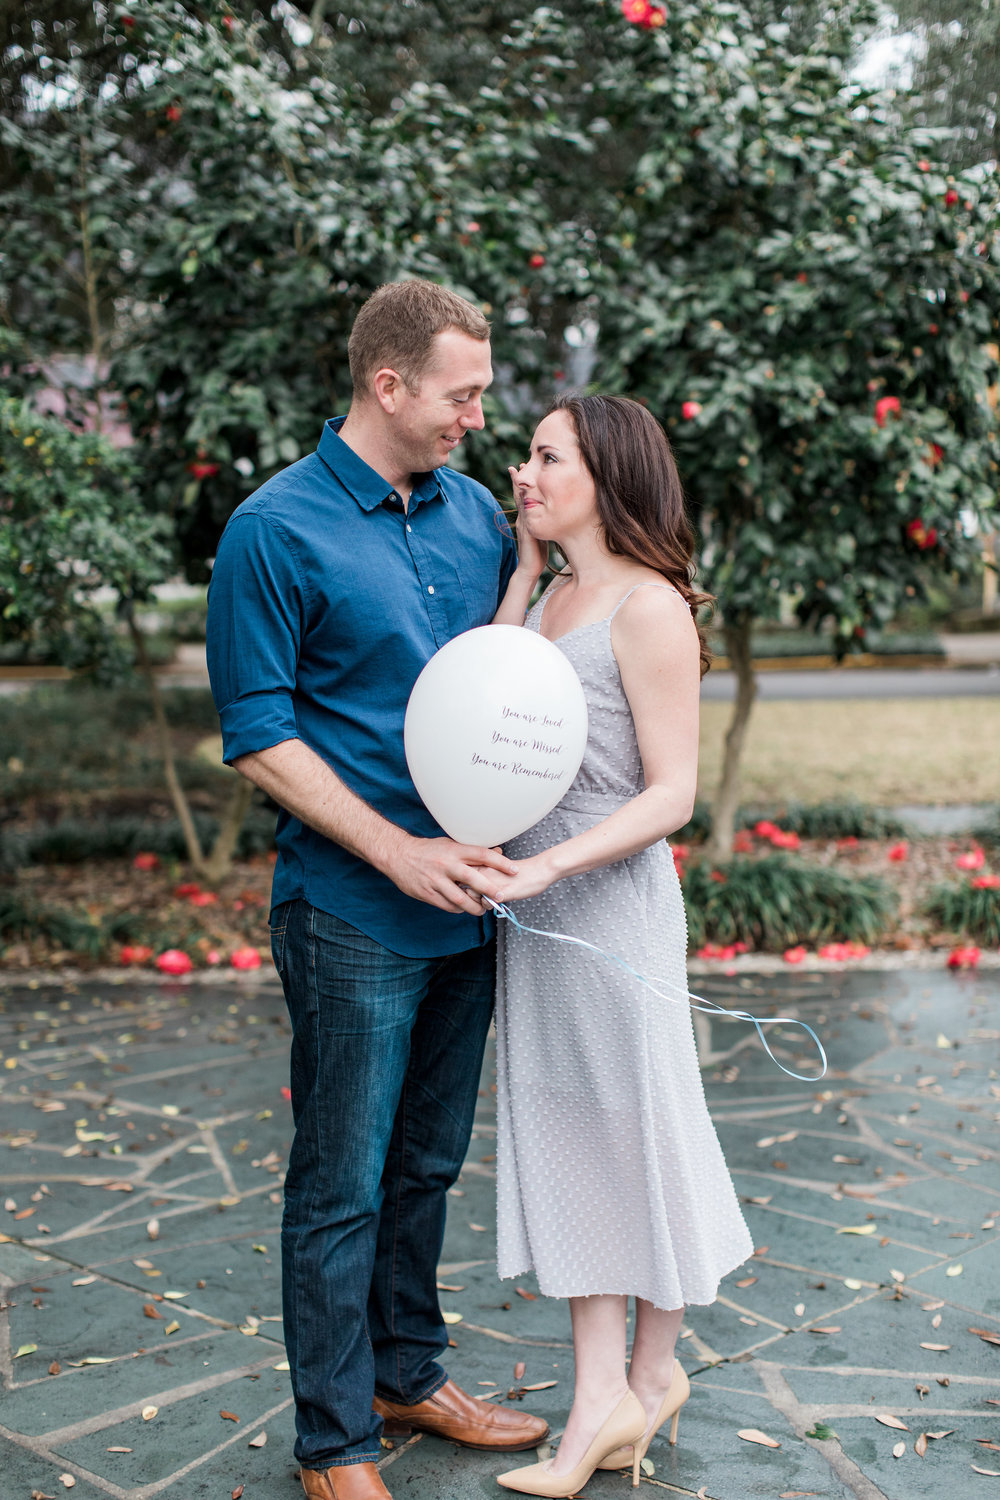 apt-b-photography-ansley-dj-memorial-shoot-savannah-wedding-photographer-lifestyle-portrait-photographer-washington-square-savannah-balloon-release-6.jpg